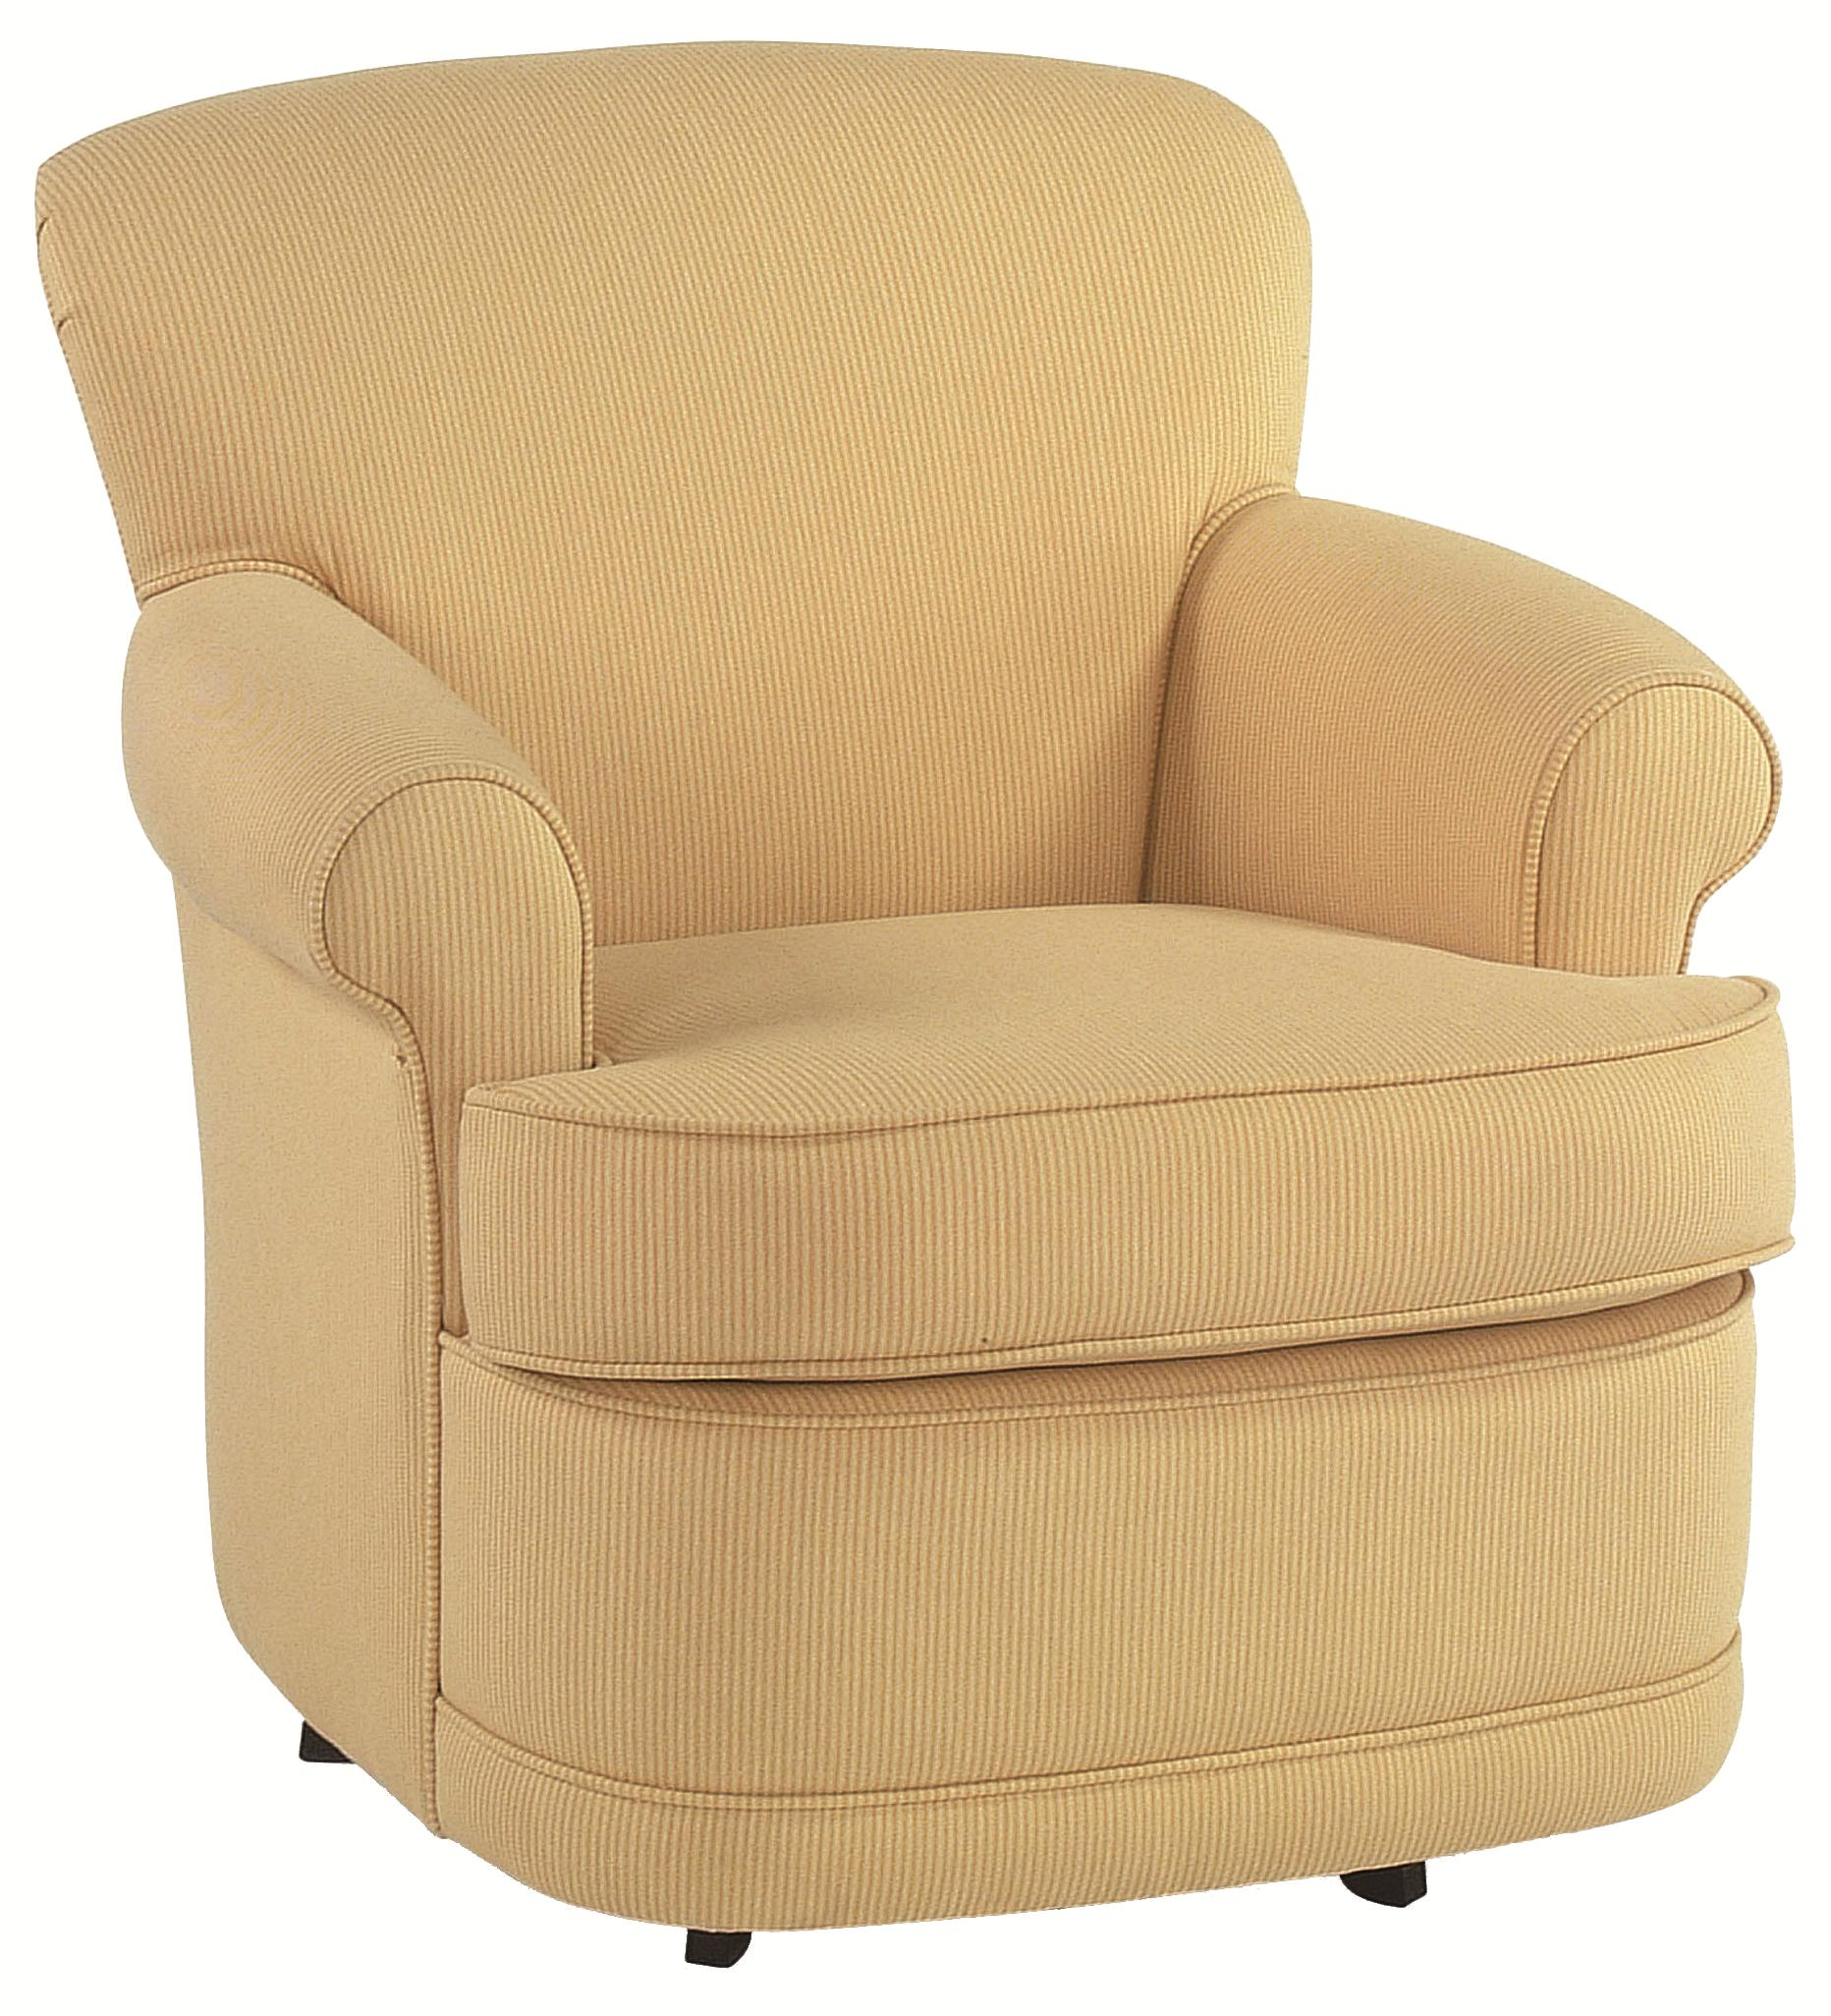 Braxton Culler Accent Chairs Traditional Upholstered